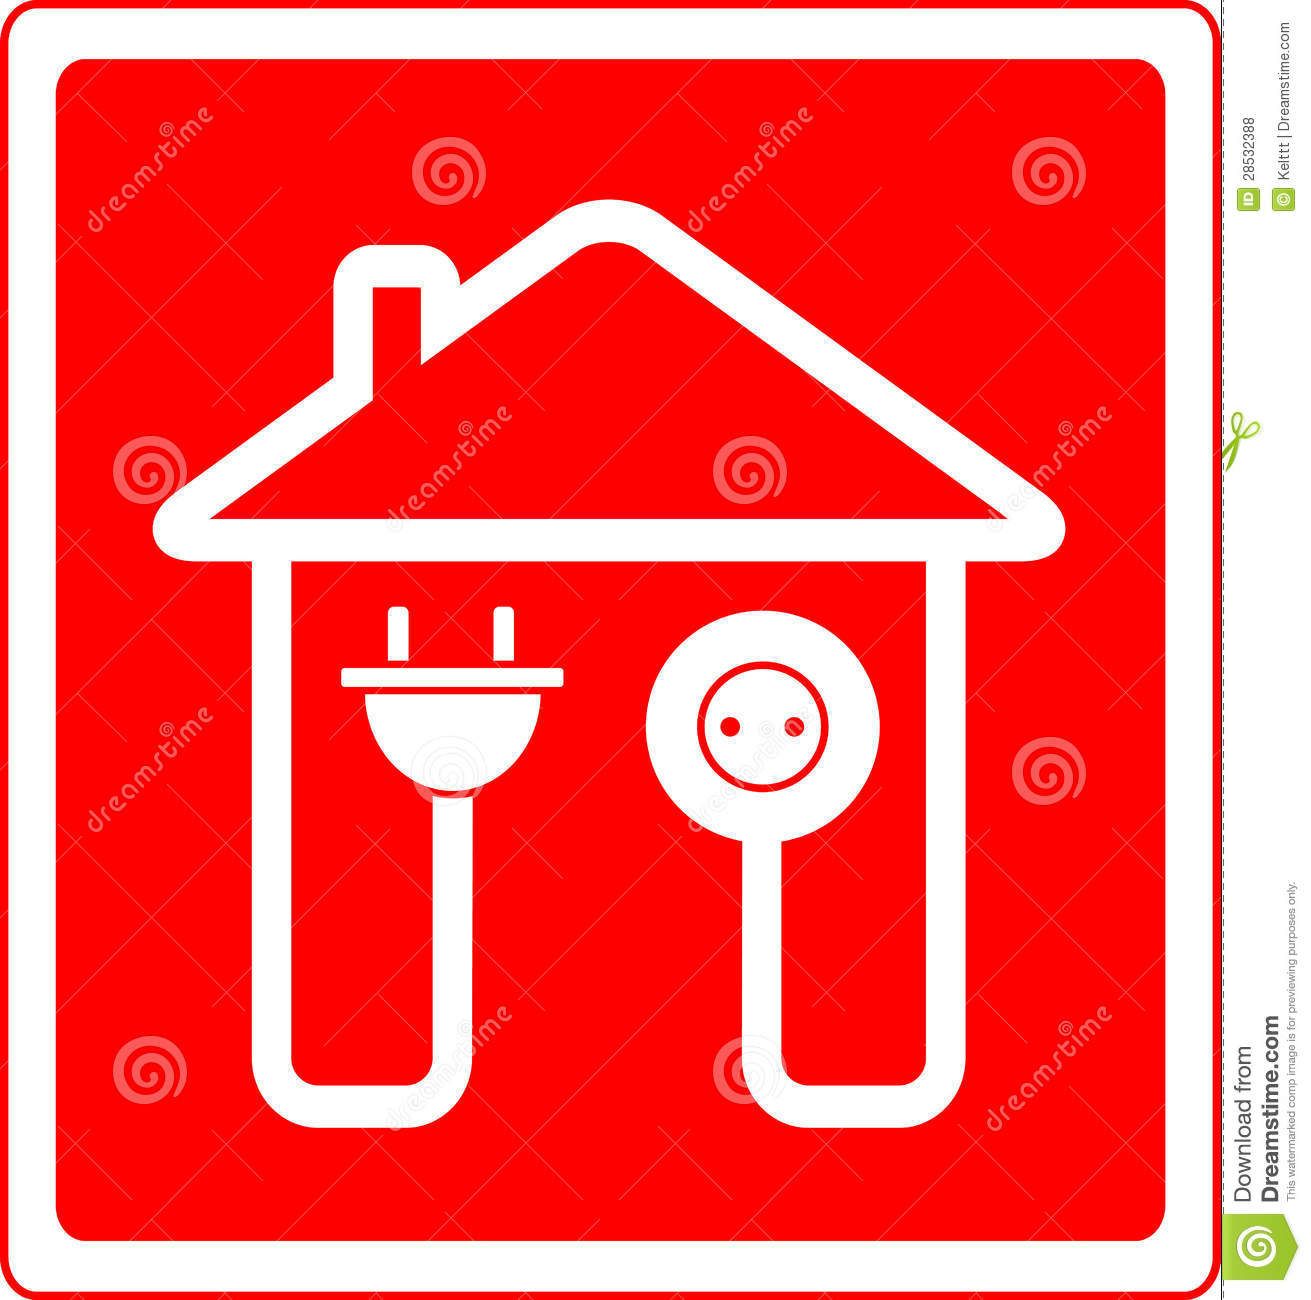 Electrical Symbol With Ac Outlet And Plug Stock Vector